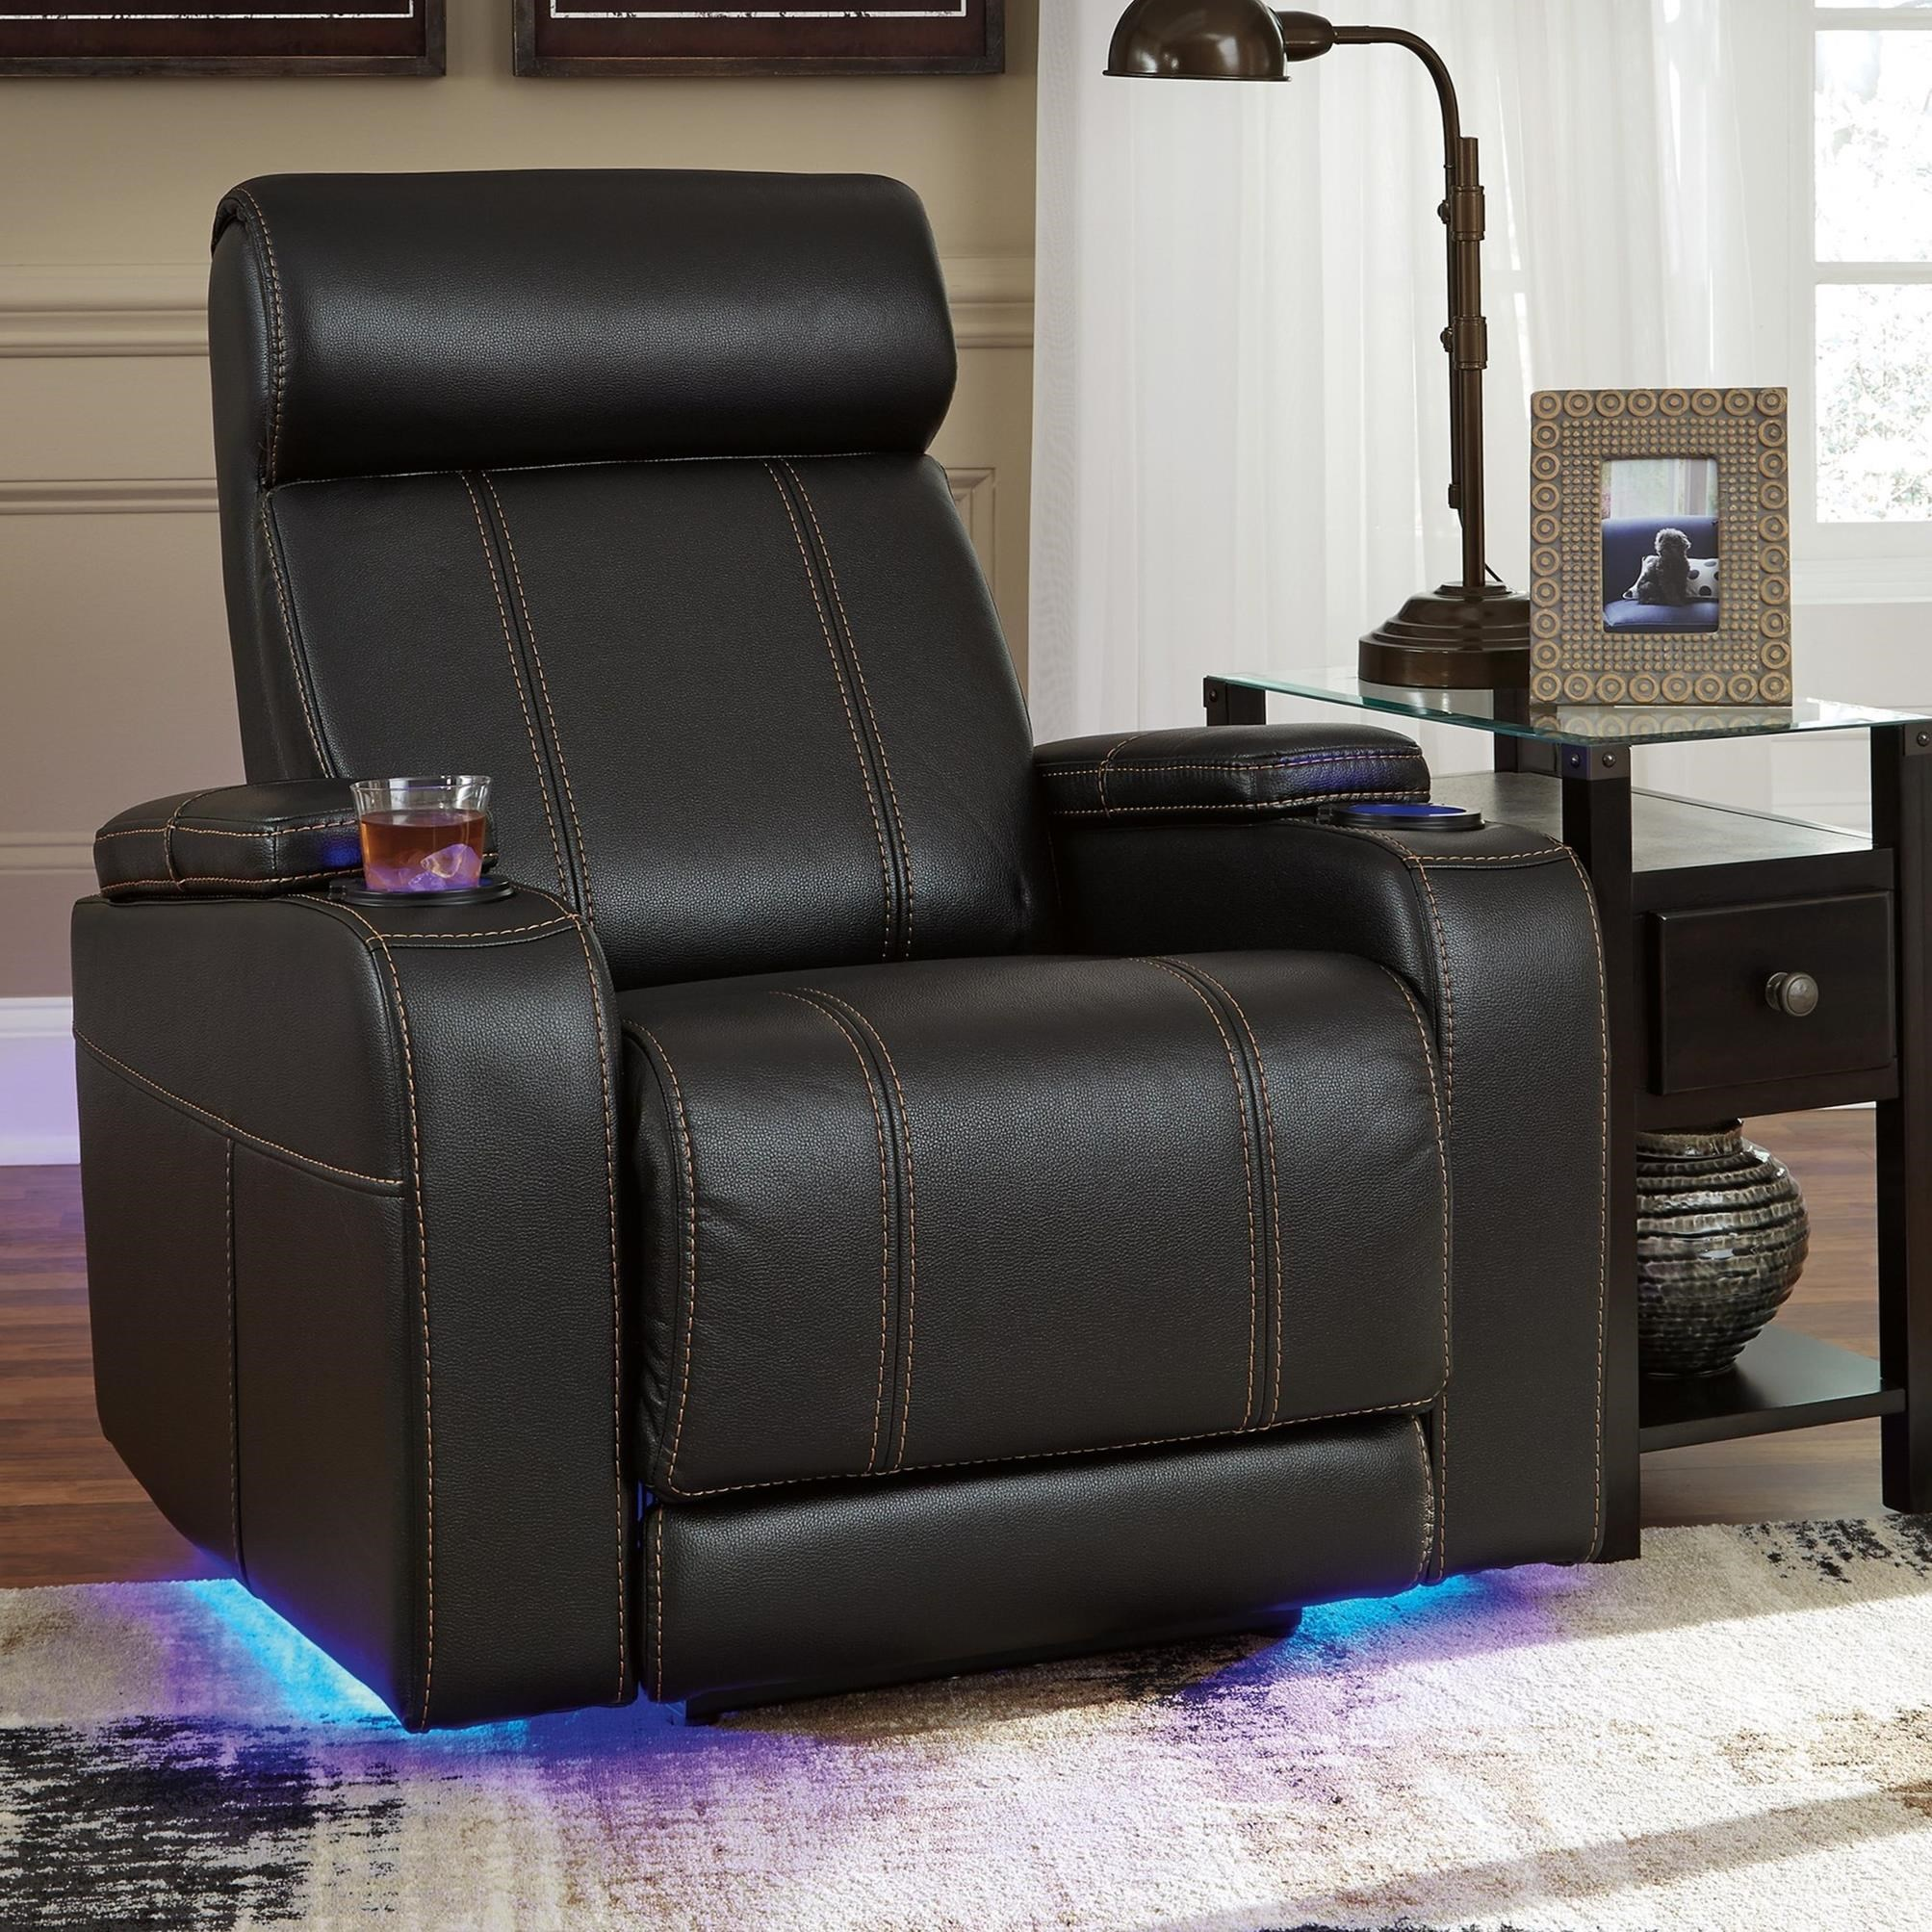 Signature Design by Ashley Boyband Faux Leather Power Recliner with